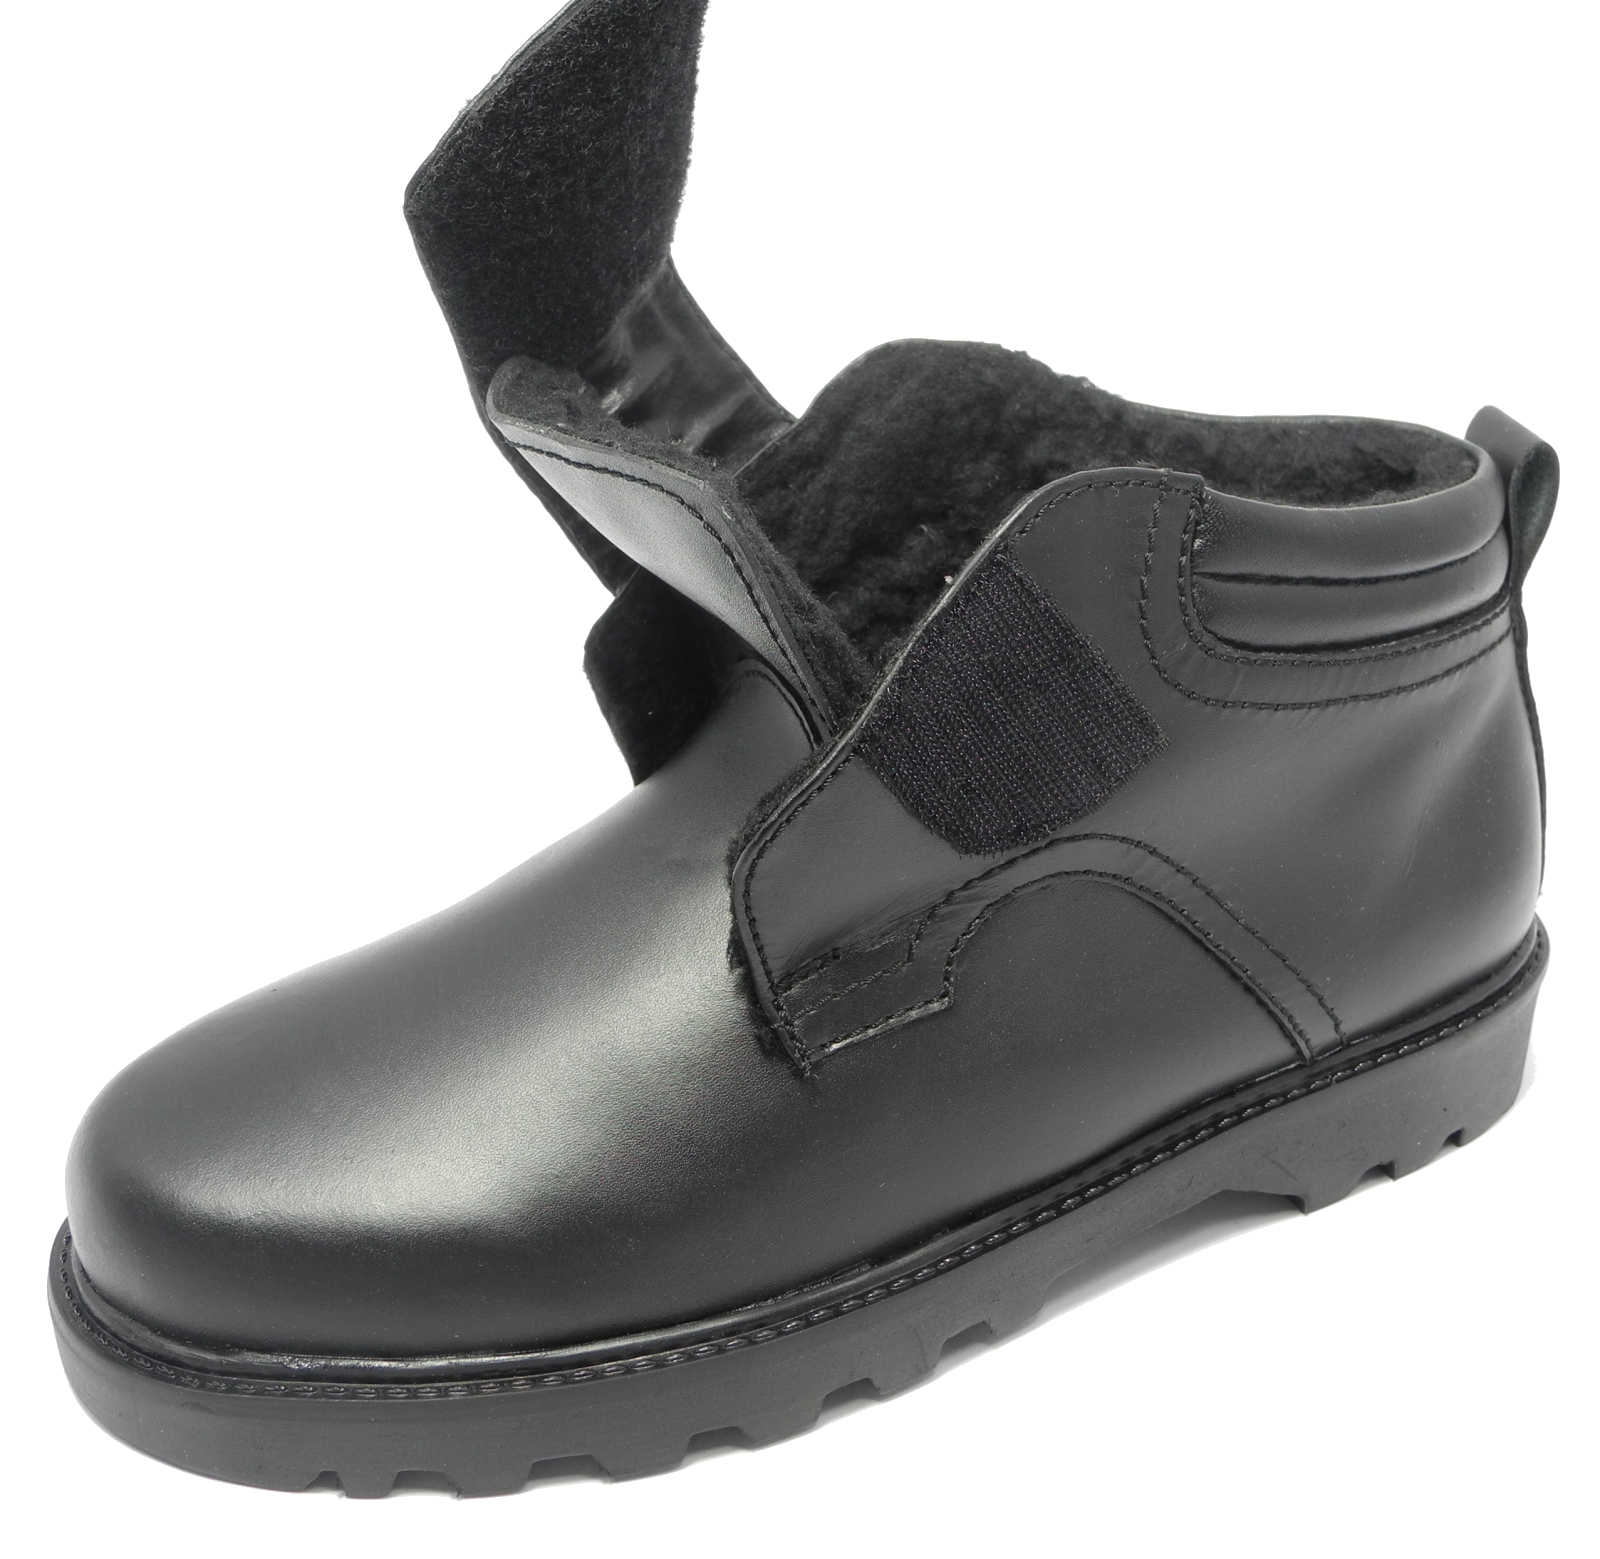 Mens Dr Keller Leather Warm Fleece Fur Lined Wide Fit Velcro Boots ...